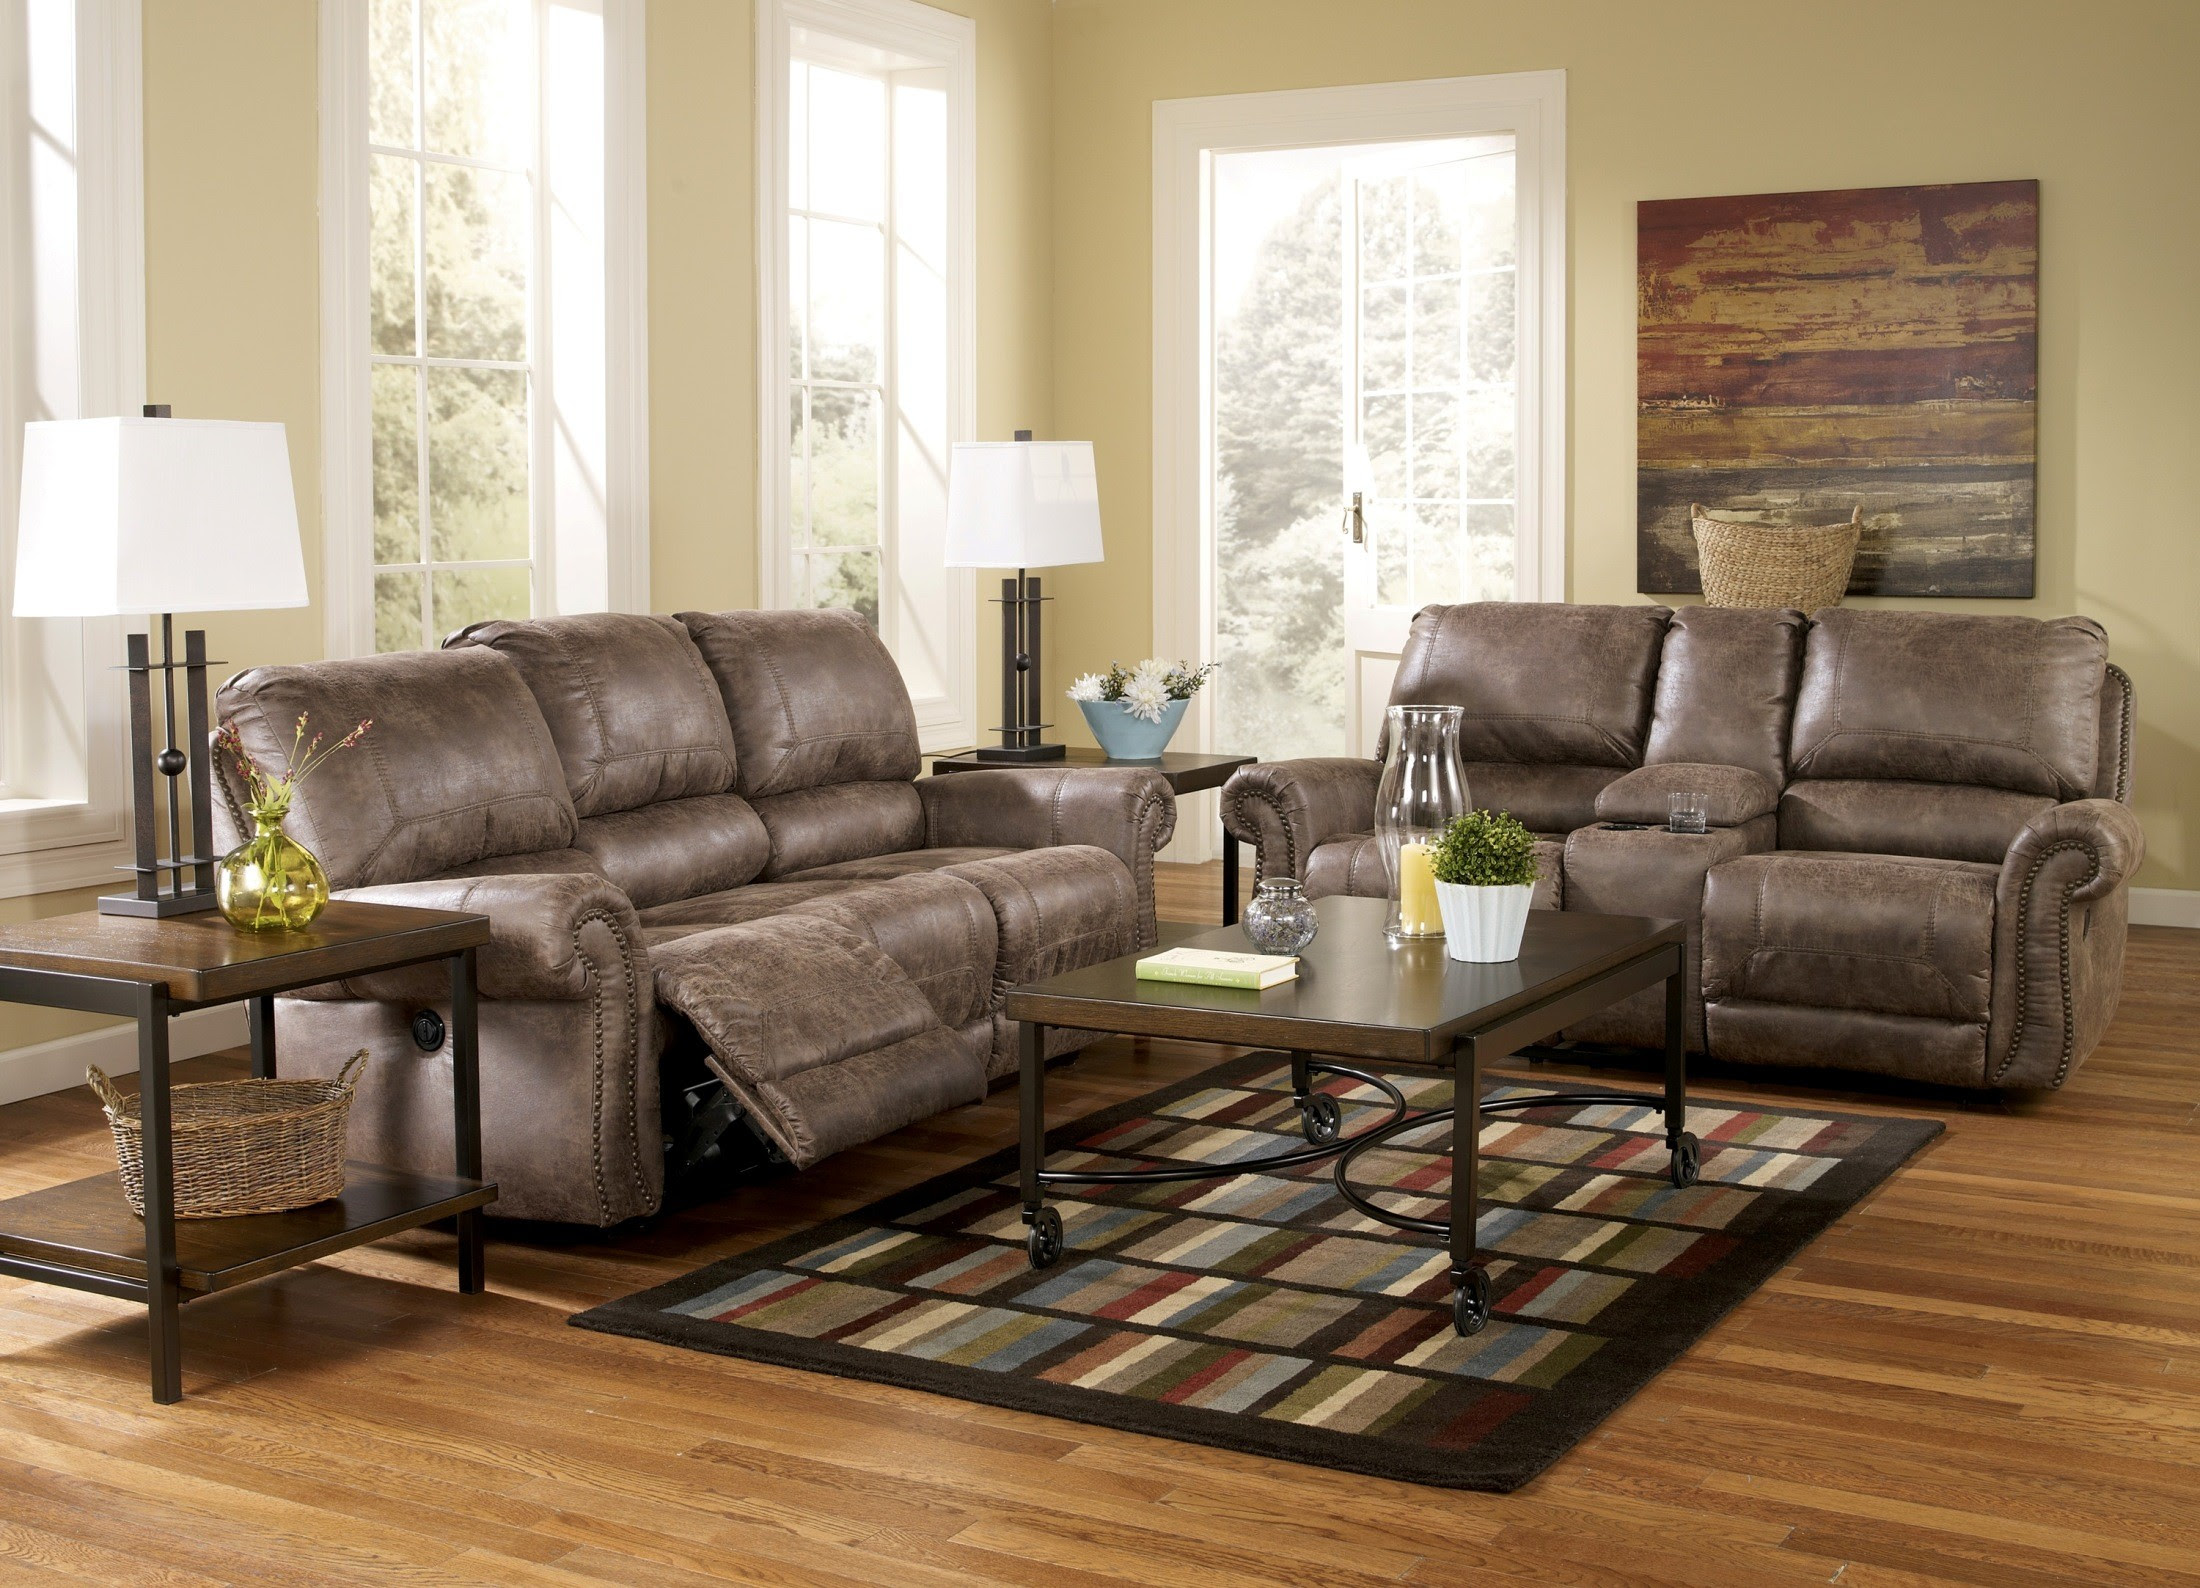 Oberson Gunsmoke Power Reclining Living Room Set, 74100, Ashley ...